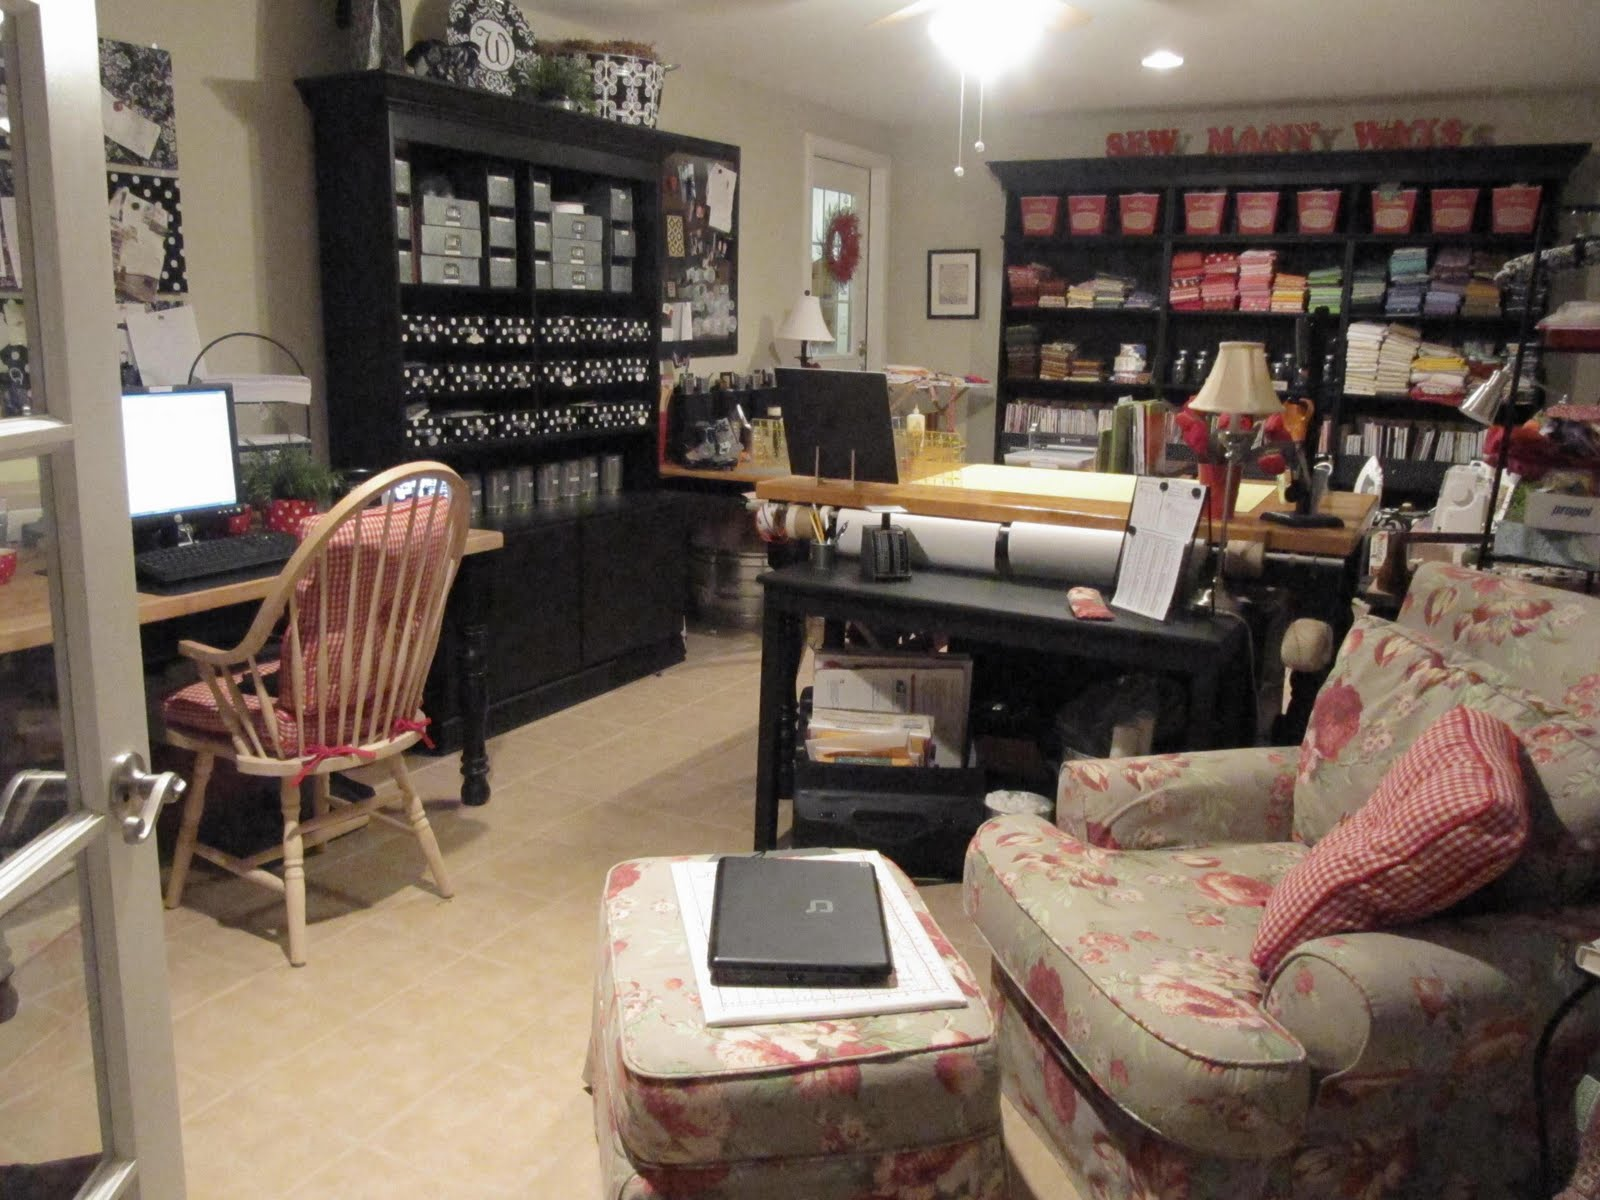 Sewing Room Designs: Sew Many Ways...: Added A Few Things To My Sewing Room